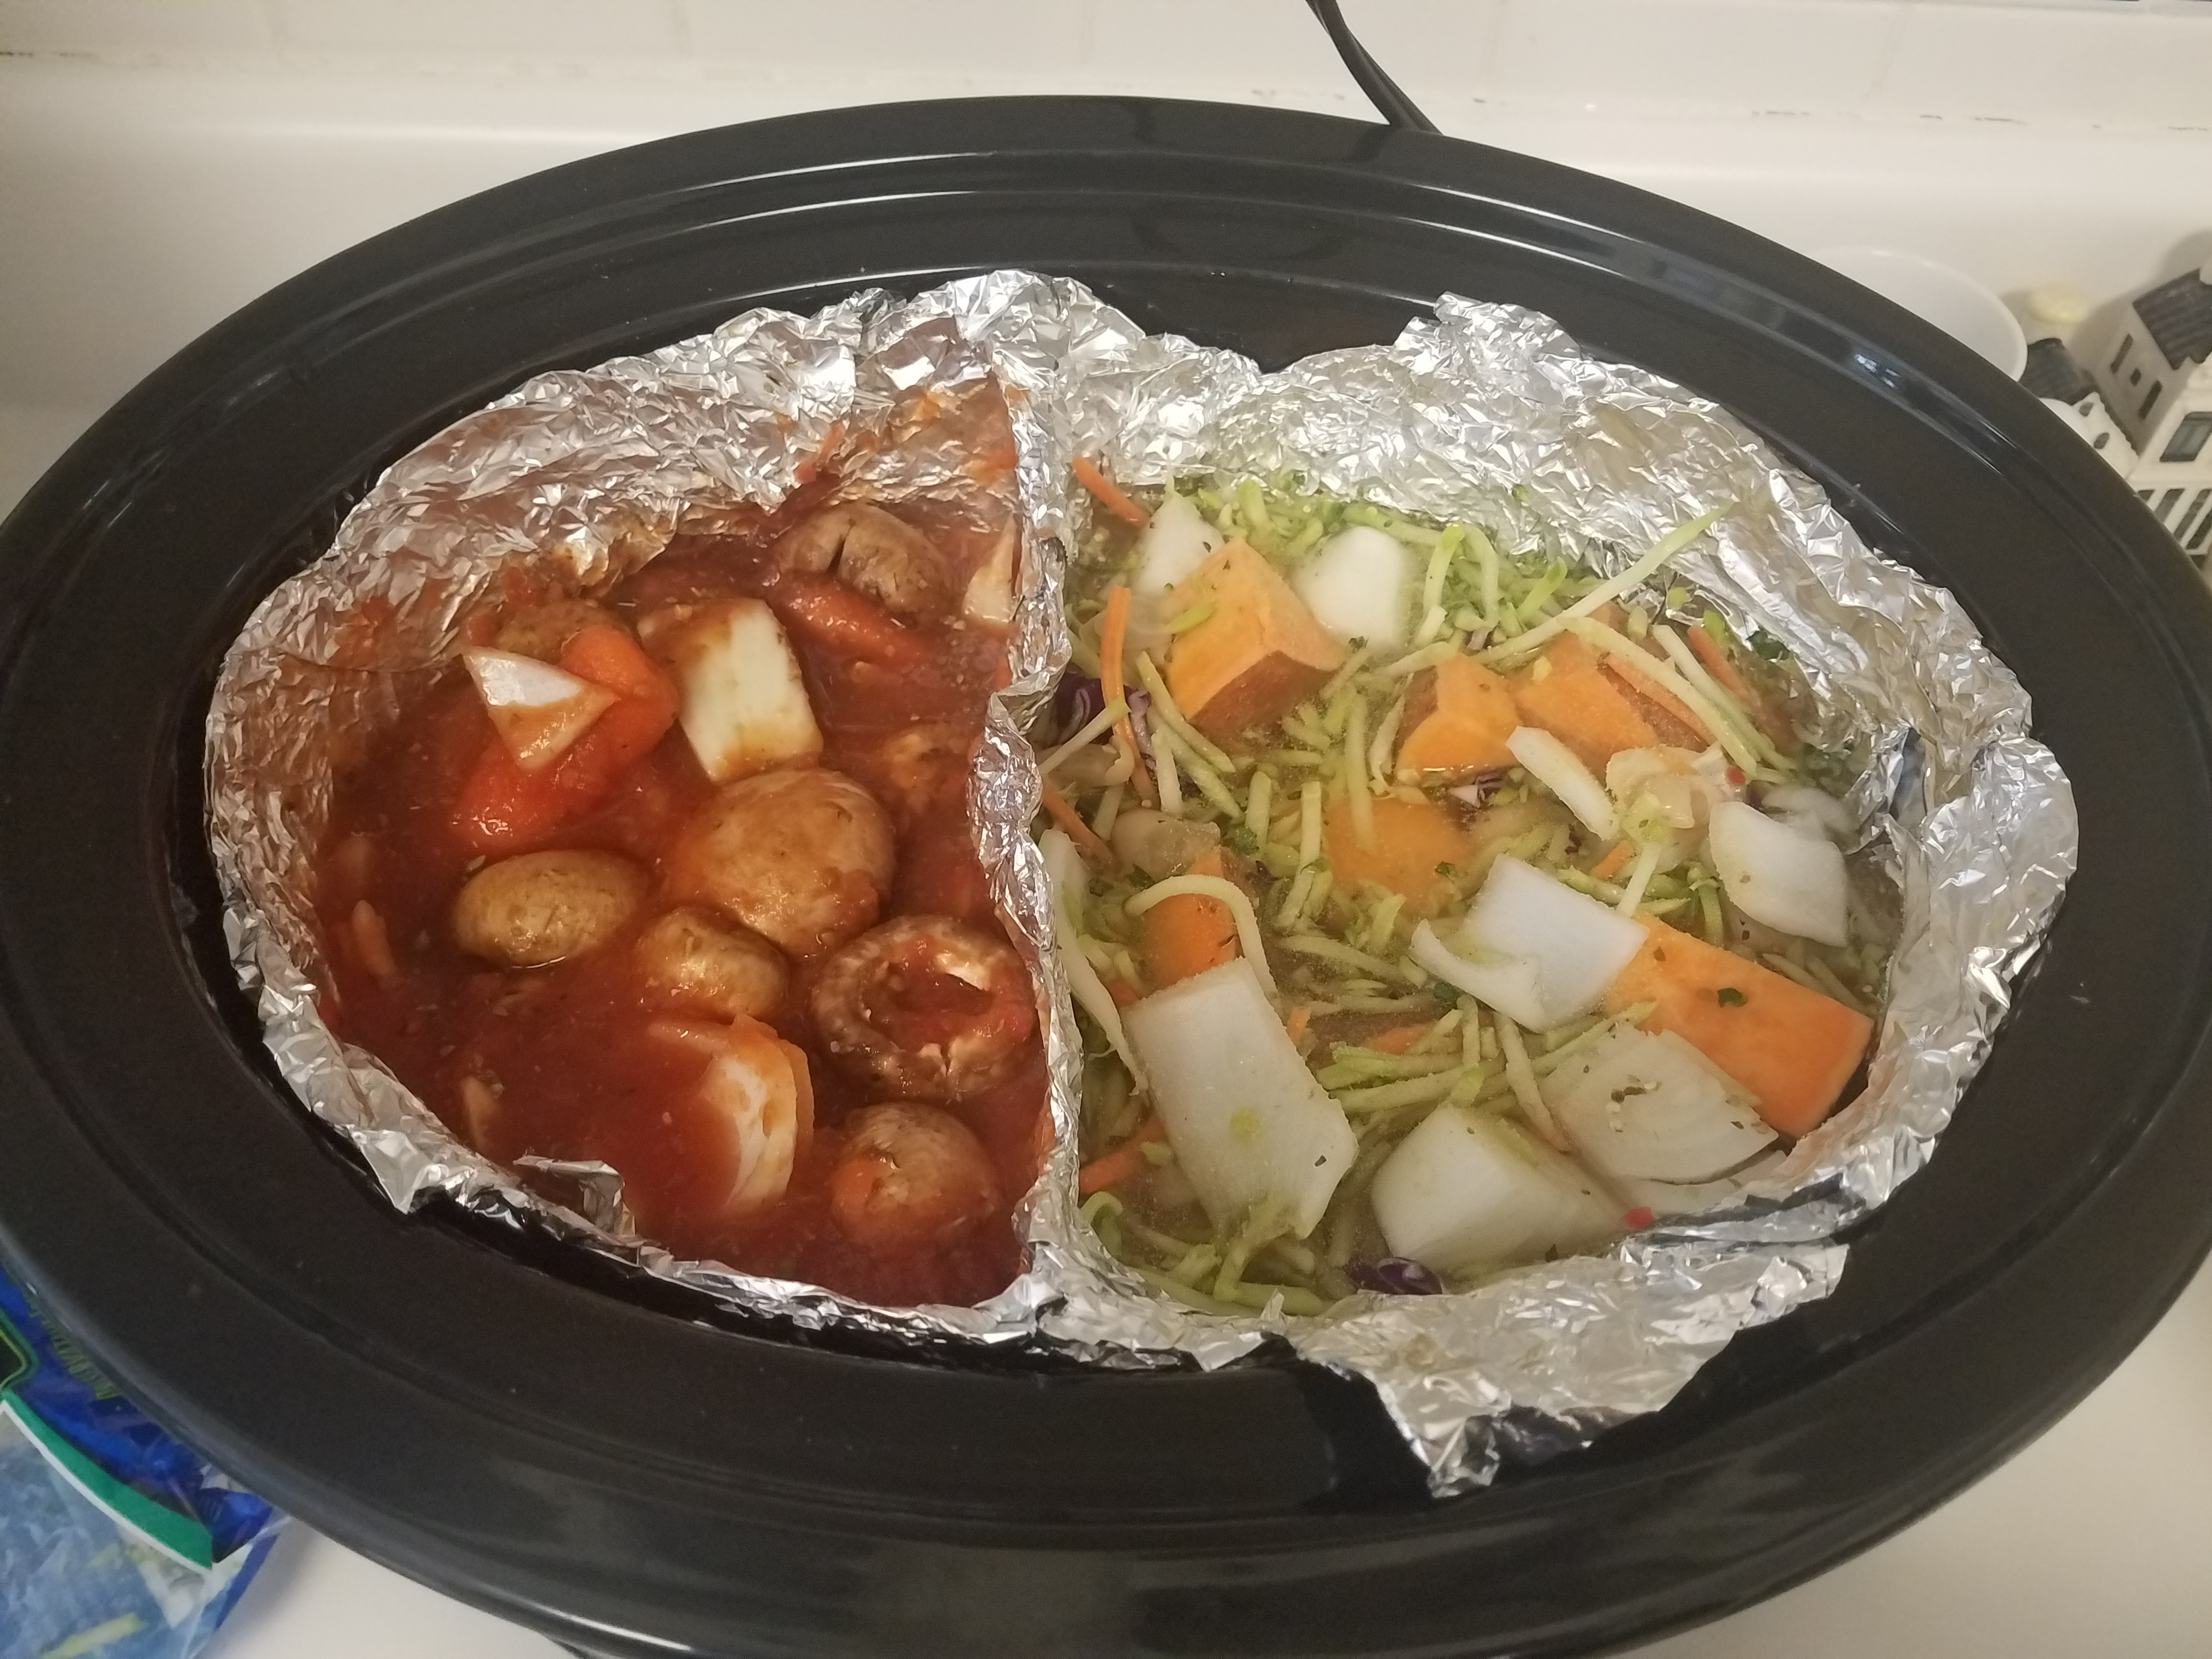 Picture of Slow Cooker Meal Divider